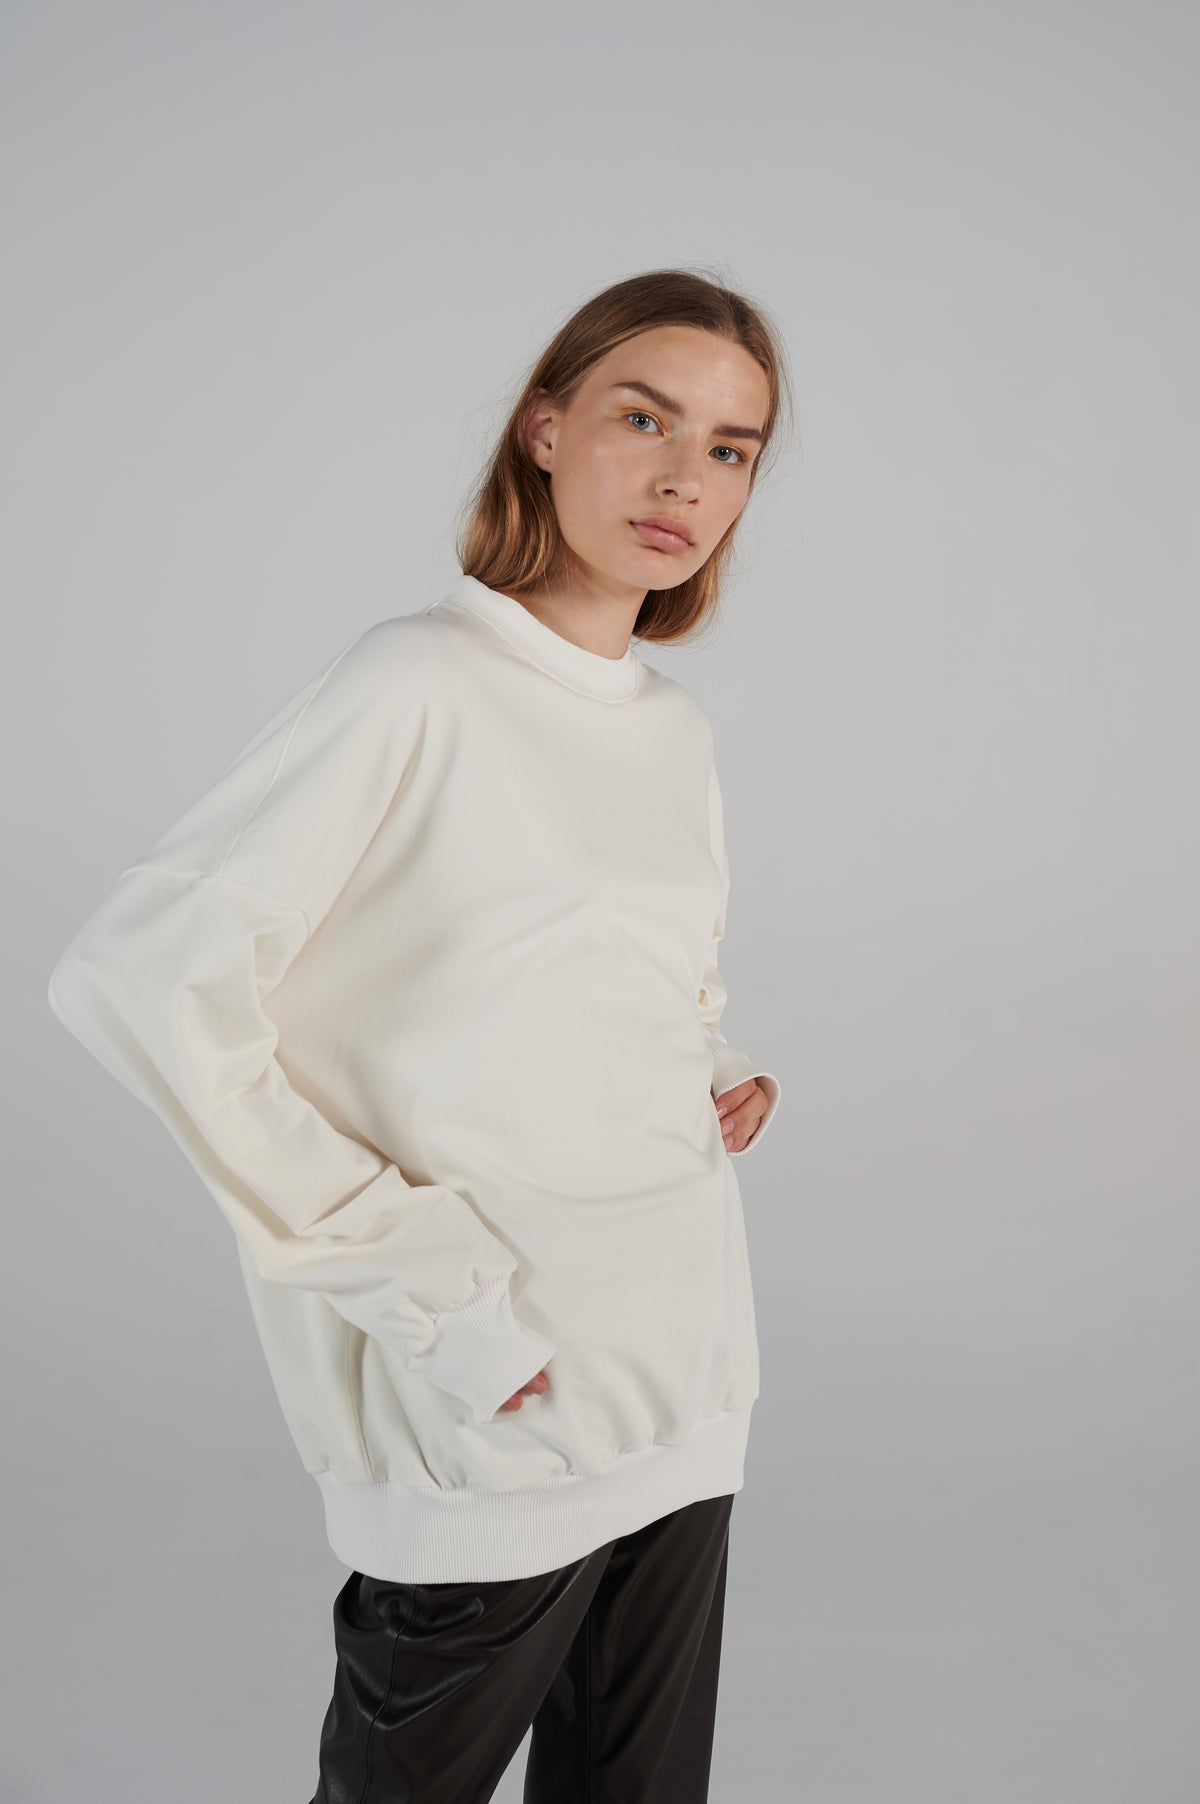 boxy-shape-white-sweater-with-red-logo-on-the-back-lookbook.jpg